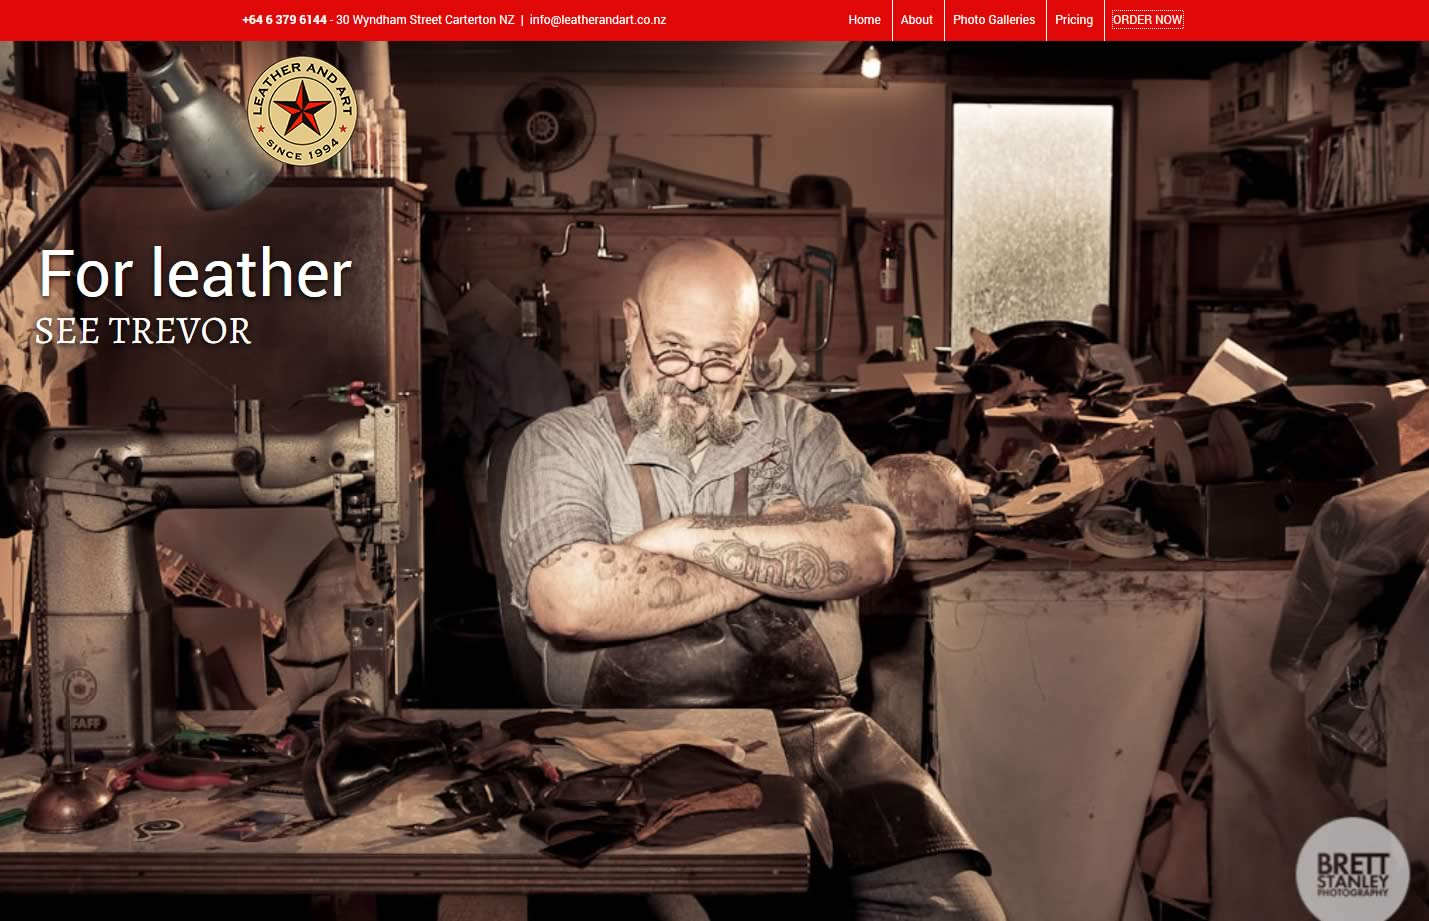 Leather And Art homepage - website relaunch By Nectarine